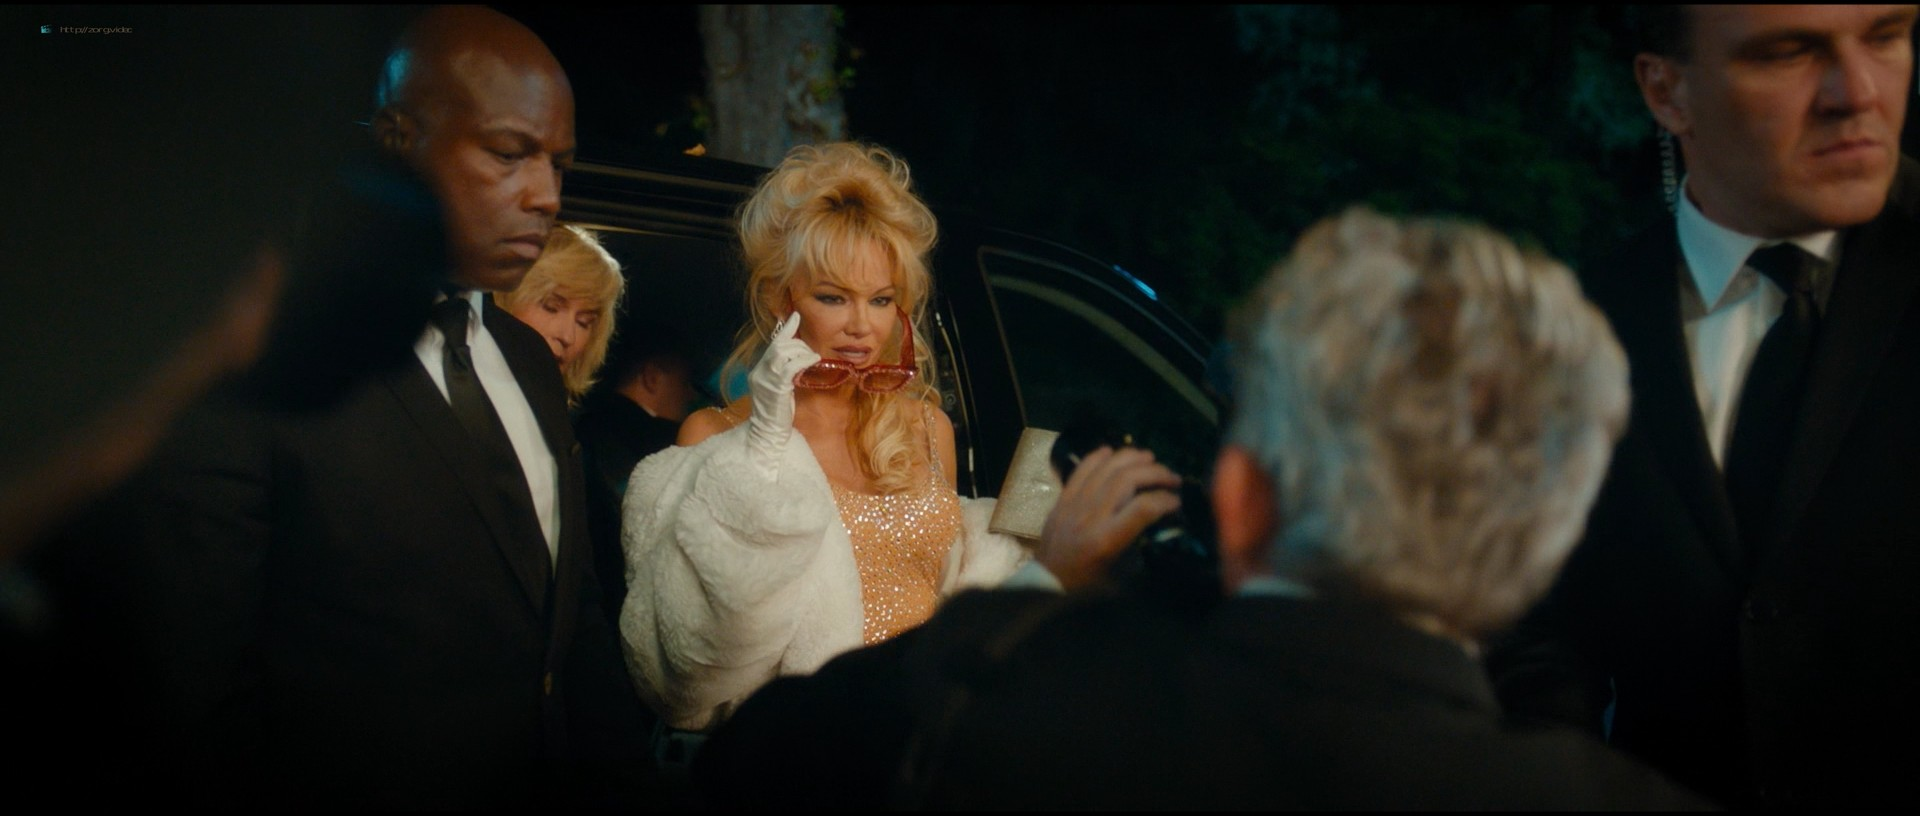 Pamela Anderson sexy Élodie Fontan and others hot - Nicky Larson et le parfum de Cupidon (2018) 1080p BluRay (14)